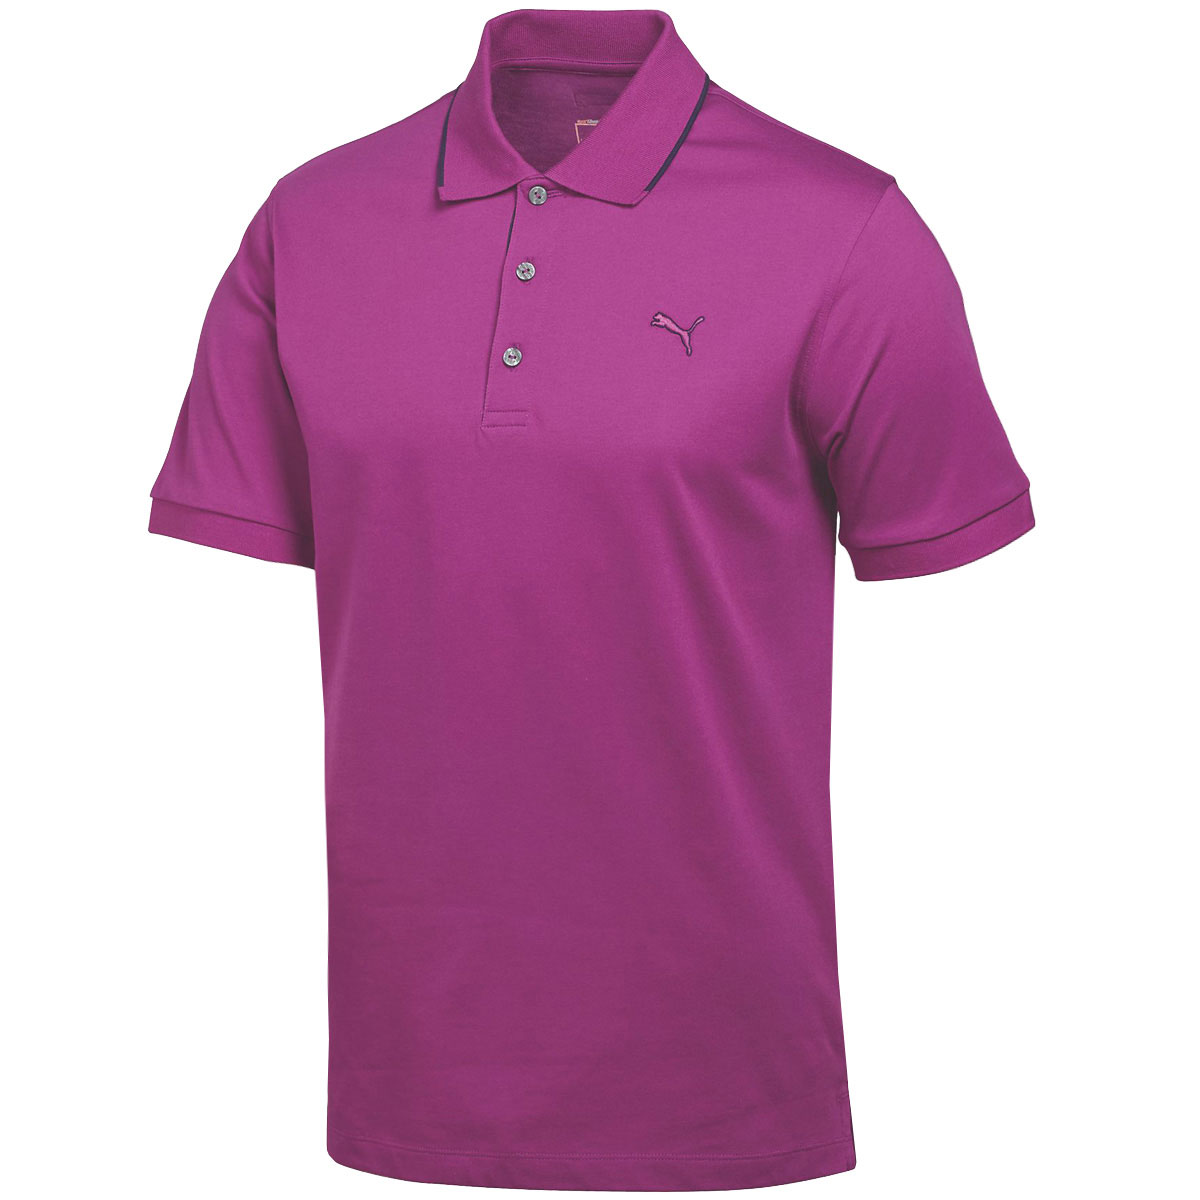 Puma golf mens cotton solid polo shirt drycell tech for Mens puma golf shirts